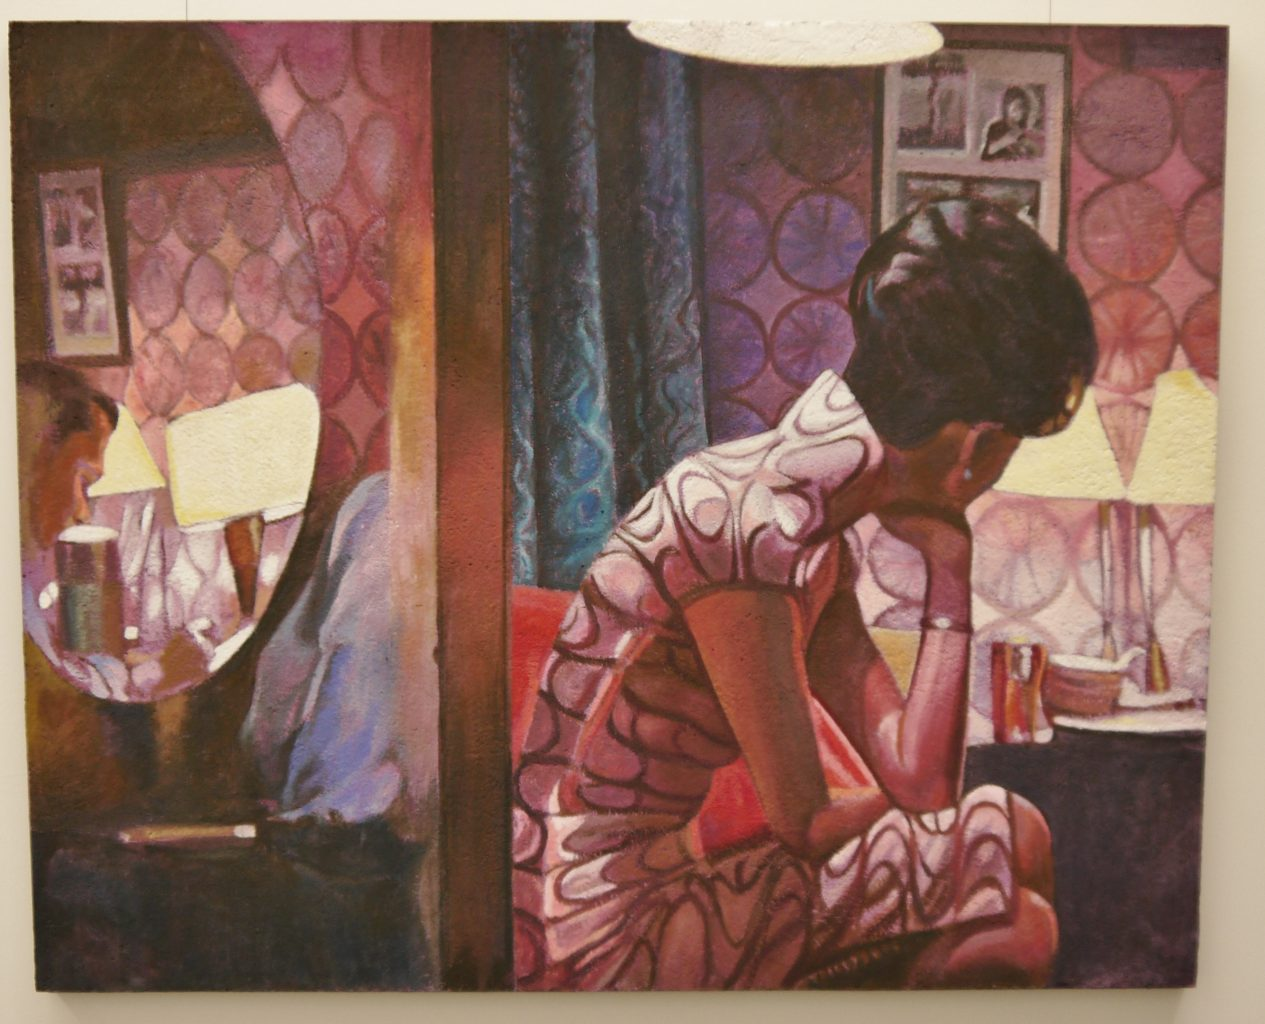 Claude Gazier, In the Mood for love, 2012